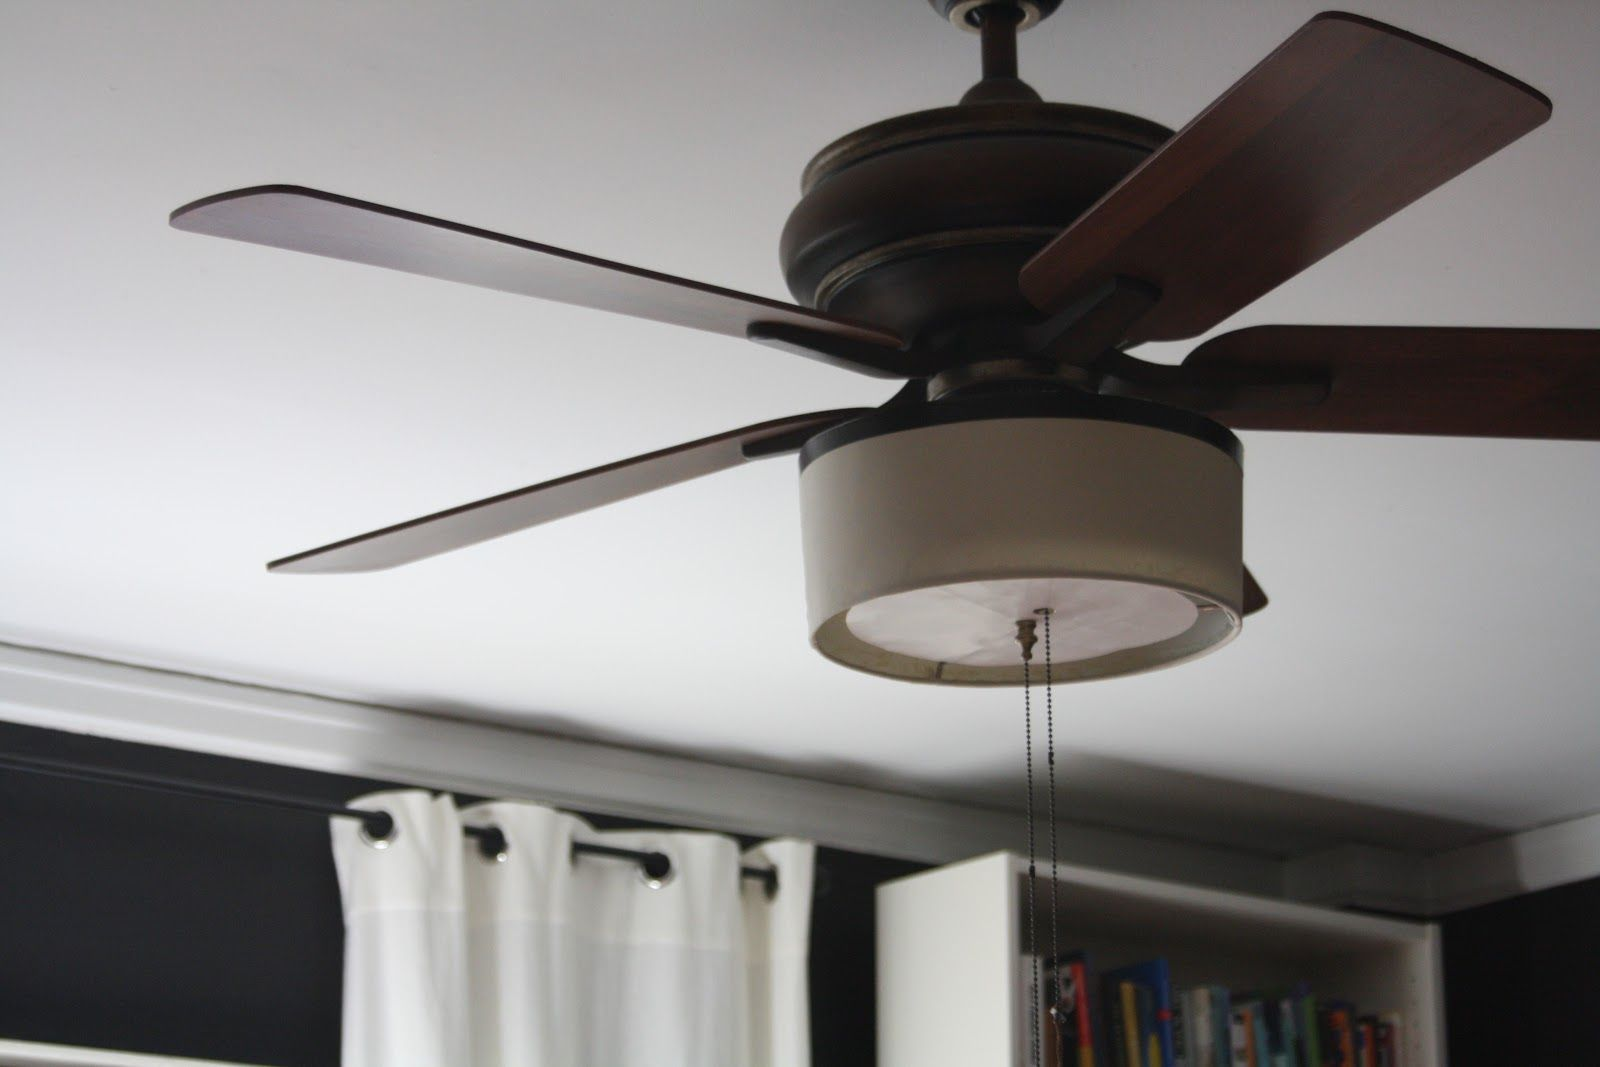 1 Fan Health Diy Drum Shade Ceiling Fan Shade Ceiling Fan Diy